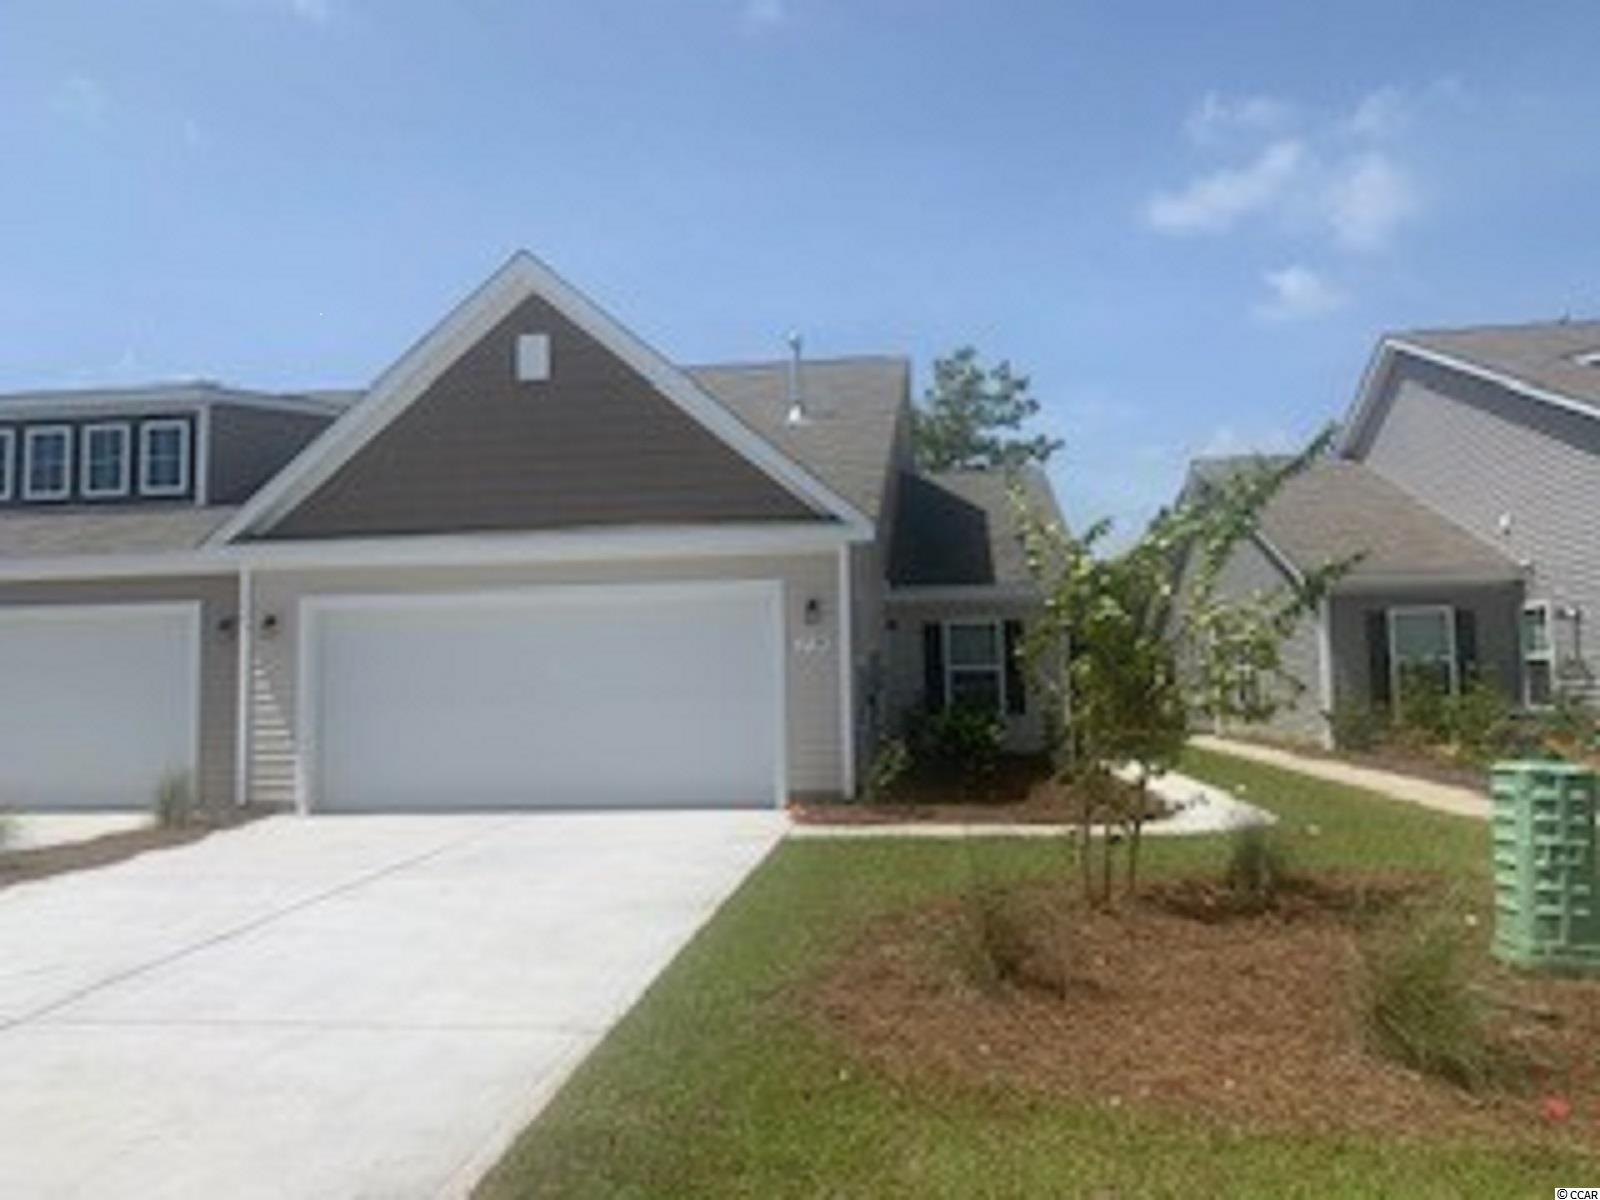 """Enjoy the laid back coastal lifestyle where all of your exterior maintenance is taken care of! A rare opportunity of a duplex being offered in Carolina Forest that also features an attached two-car garage. Upon entry you are greeted with a very open layout and high vaulted ceilings. The split bedroom floor plan offers privacy when you have guests visiting you at the beach, along with functionality. This home will also feature a spacious rear covered porch with pond views that is great for morning coffee! Granite countertops, tankless water heater, 36"""" painted cabinetry, stainless Whirlpool appliances with a gas range, and our QuickTie framing system all included. This is America's Smart Home! Ask an agent today about our industry leading smart home package that is standard in every home.  *Photos are of a similar Tuscan home. (Home and community information, including pricing, included features, terms, availability and amenities, are subject to change prior to sale at any time without notice or obligation.  Square footages are approximate.  Pictures, photographs, colors, features, and sizes are for illustration purposes only and will vary from the homes as built.  Equal housing opportunity builder.)"""